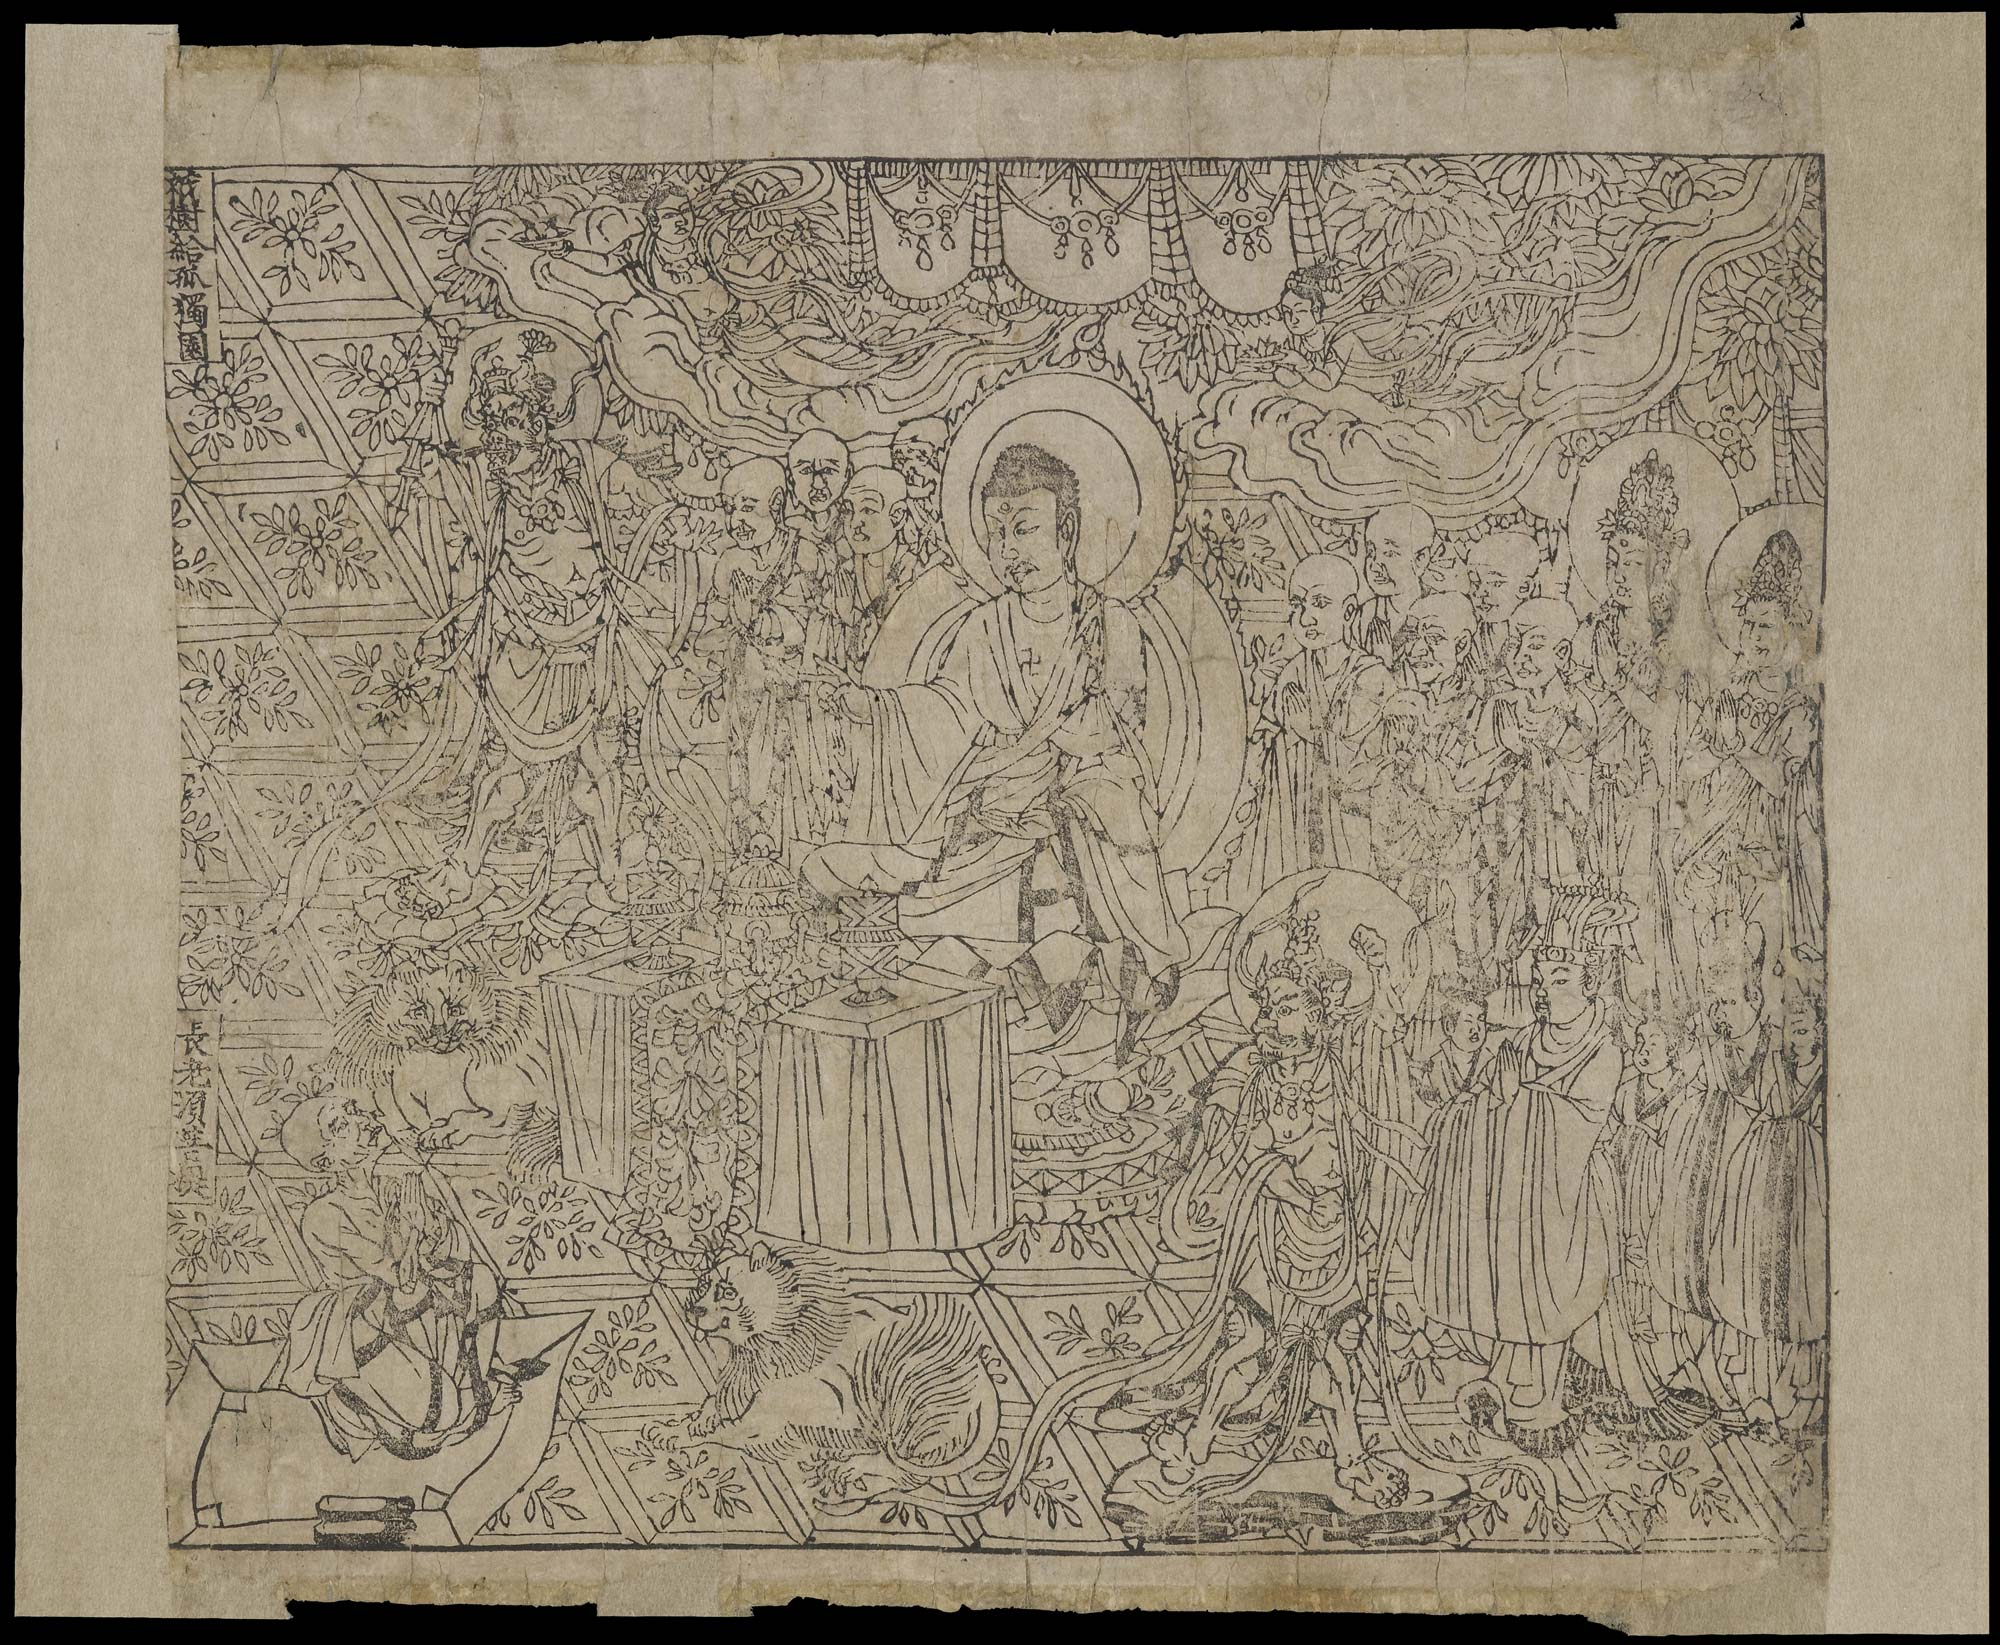 Frontispiece of the Diamond Sutra showing a woodblock print of the Buddha